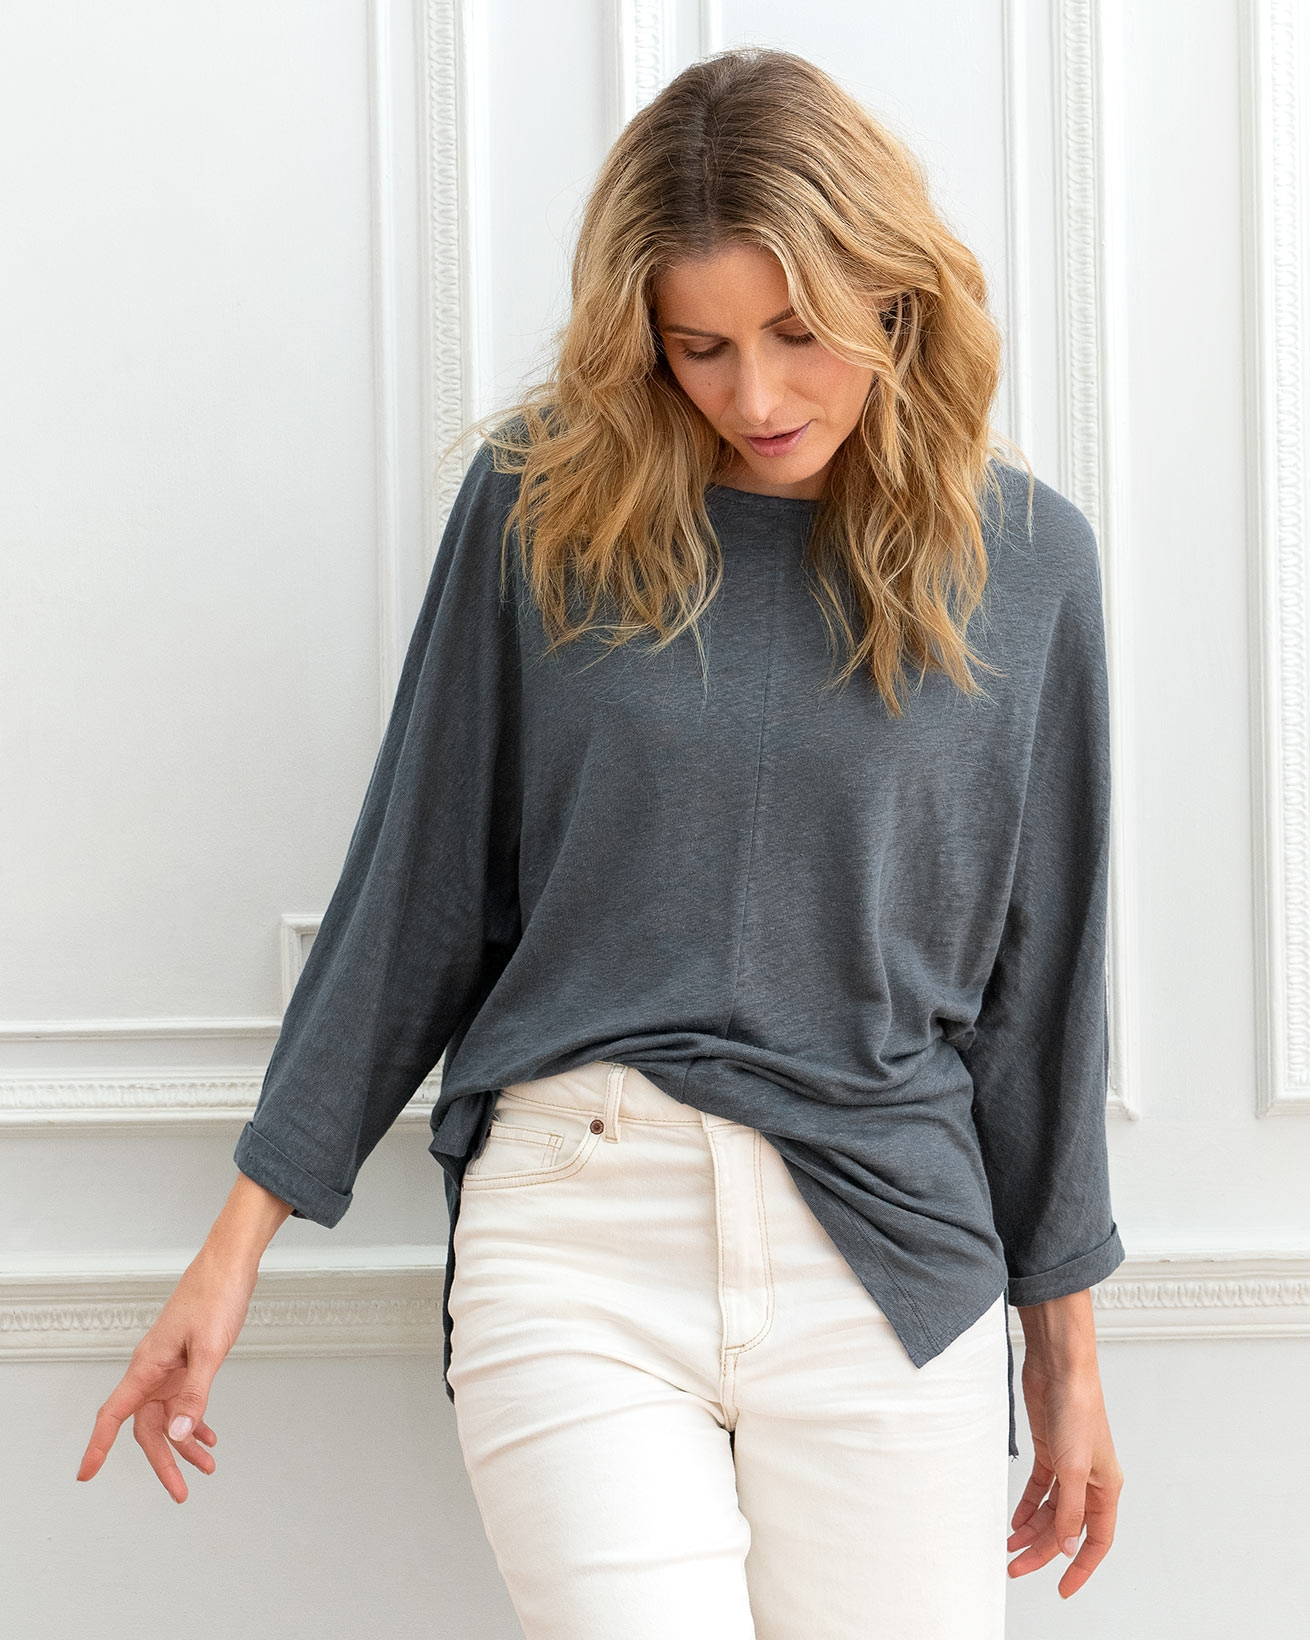 7156-linen-boat-neck-top-smoke-grey-75_lfs.jpg